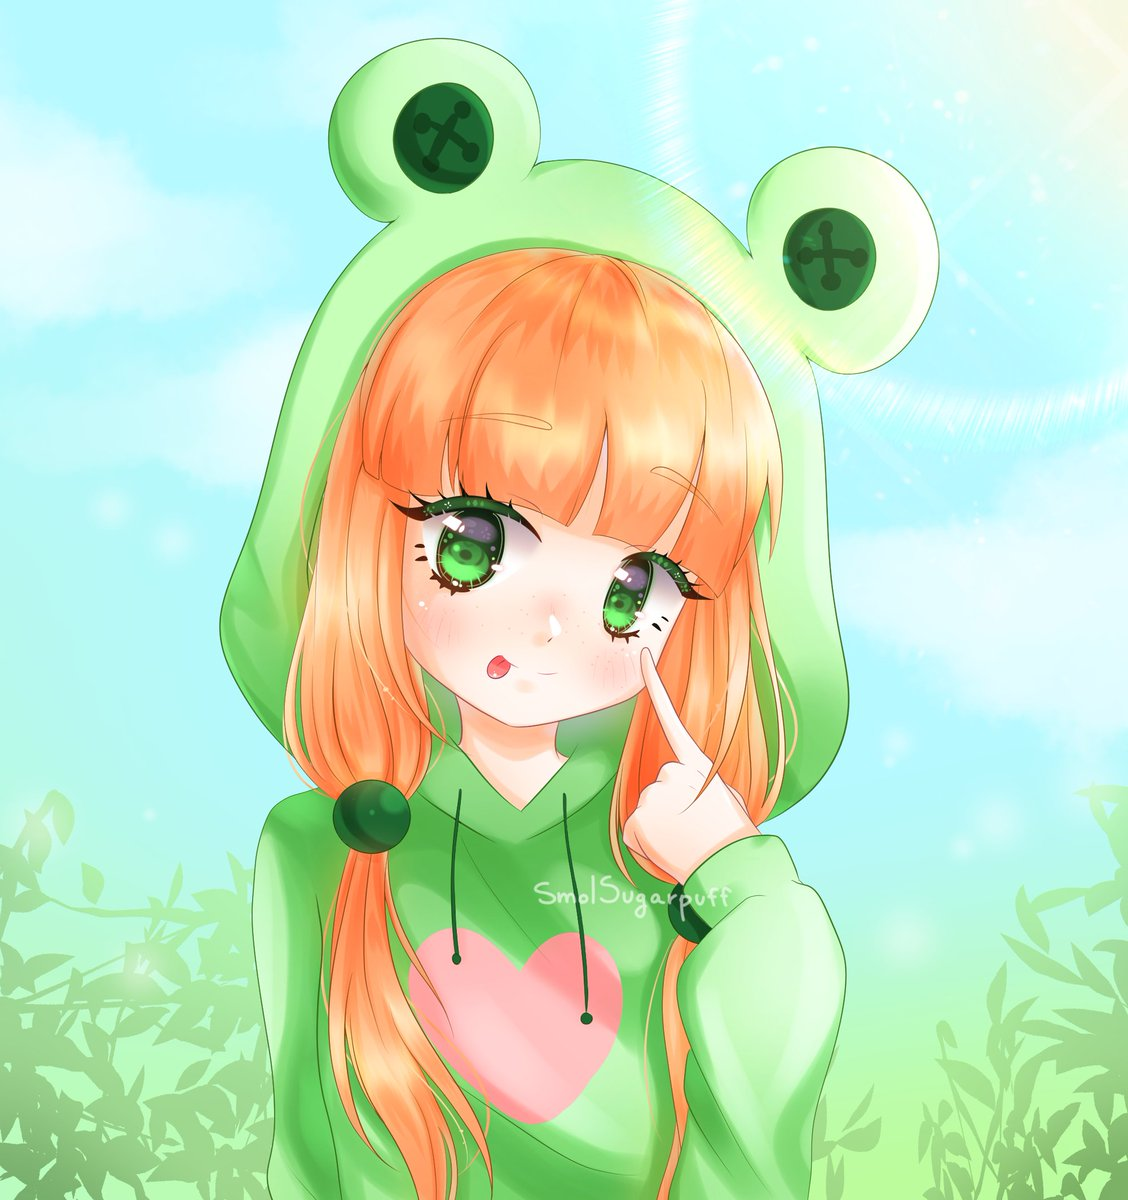 In aliexpress, you can also find other good deals on phones and telecommunications, sports and. Art trade with @/_Stacie cookie_ on ig! #cute #kawaii #anime #frog https://t.co/pb3qEr4pAZ ...